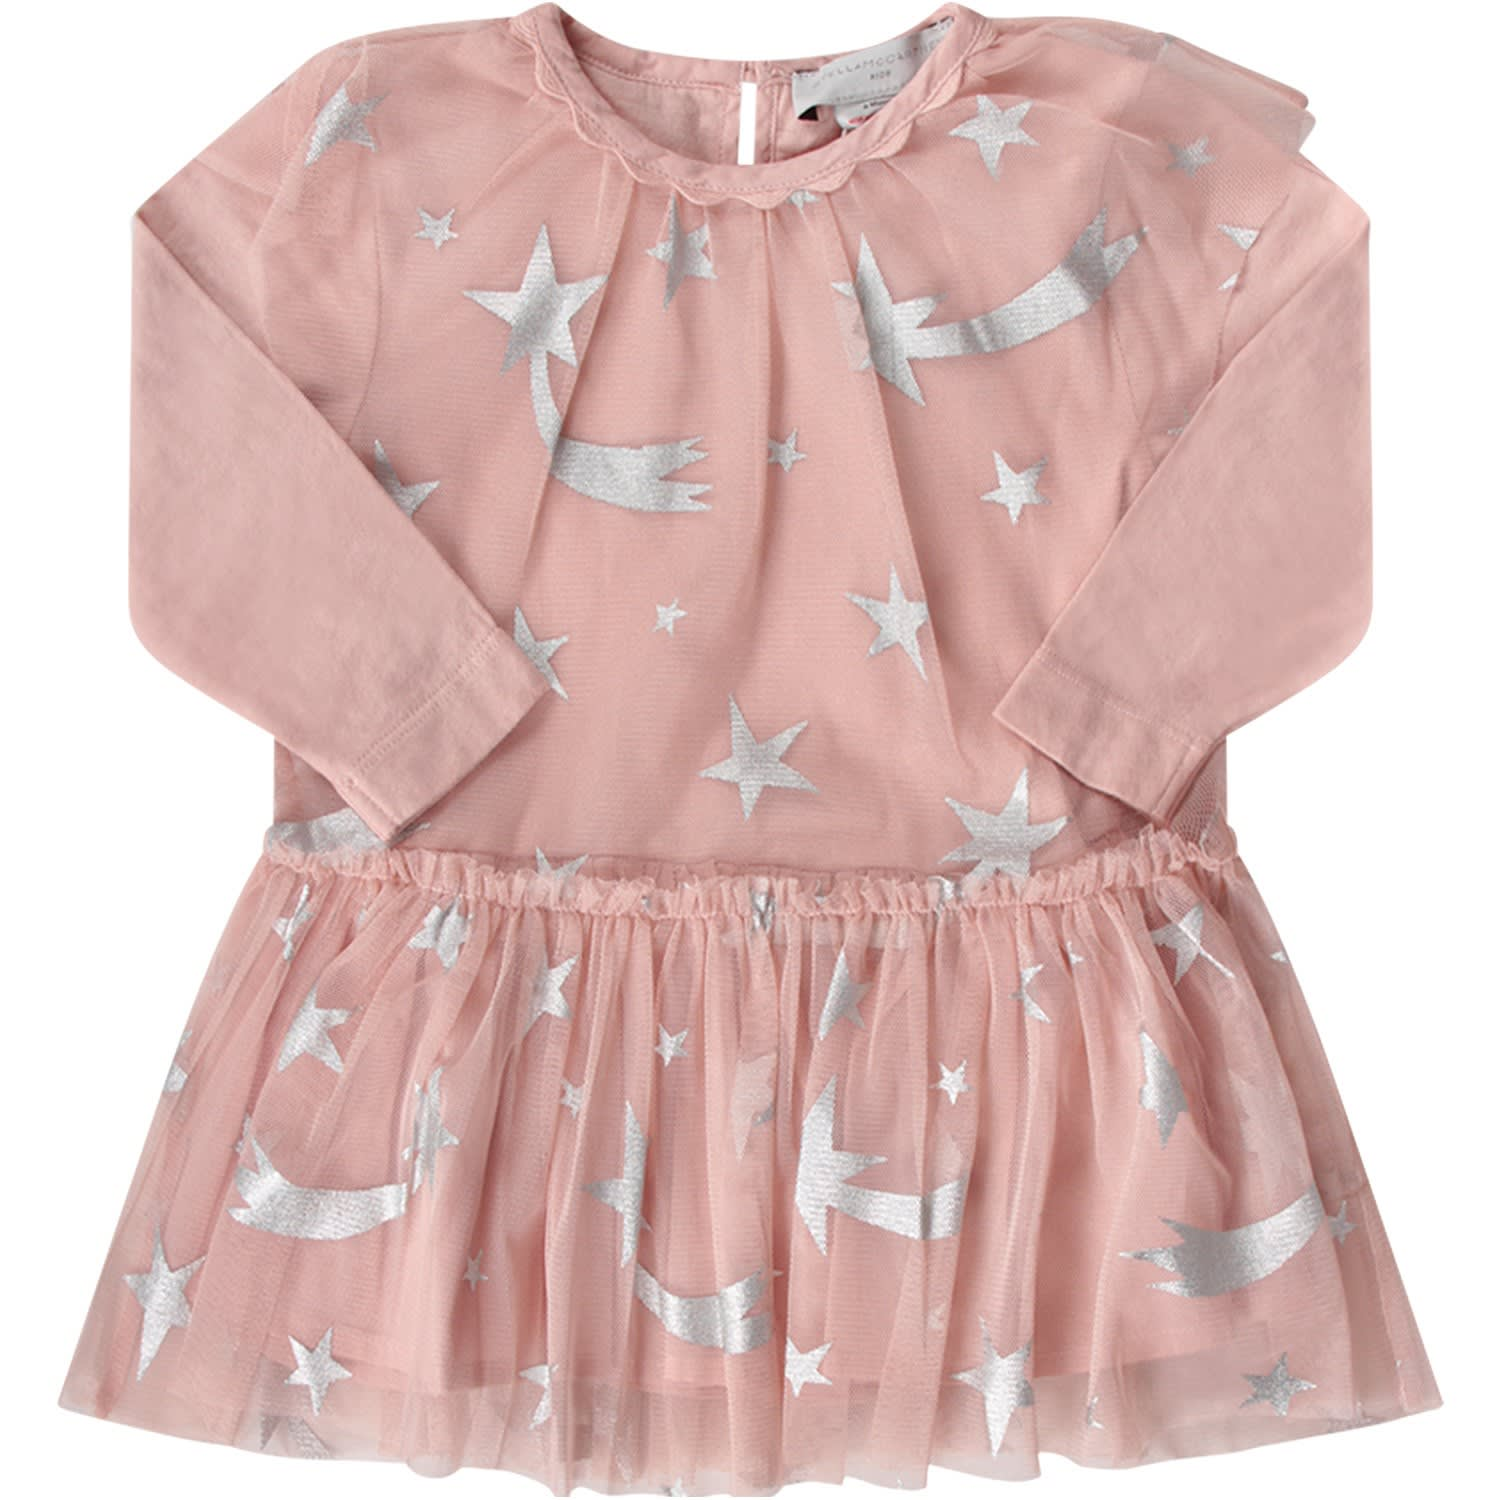 Stella McCartney Kids Pink Babygirl Dress With Silver Stars